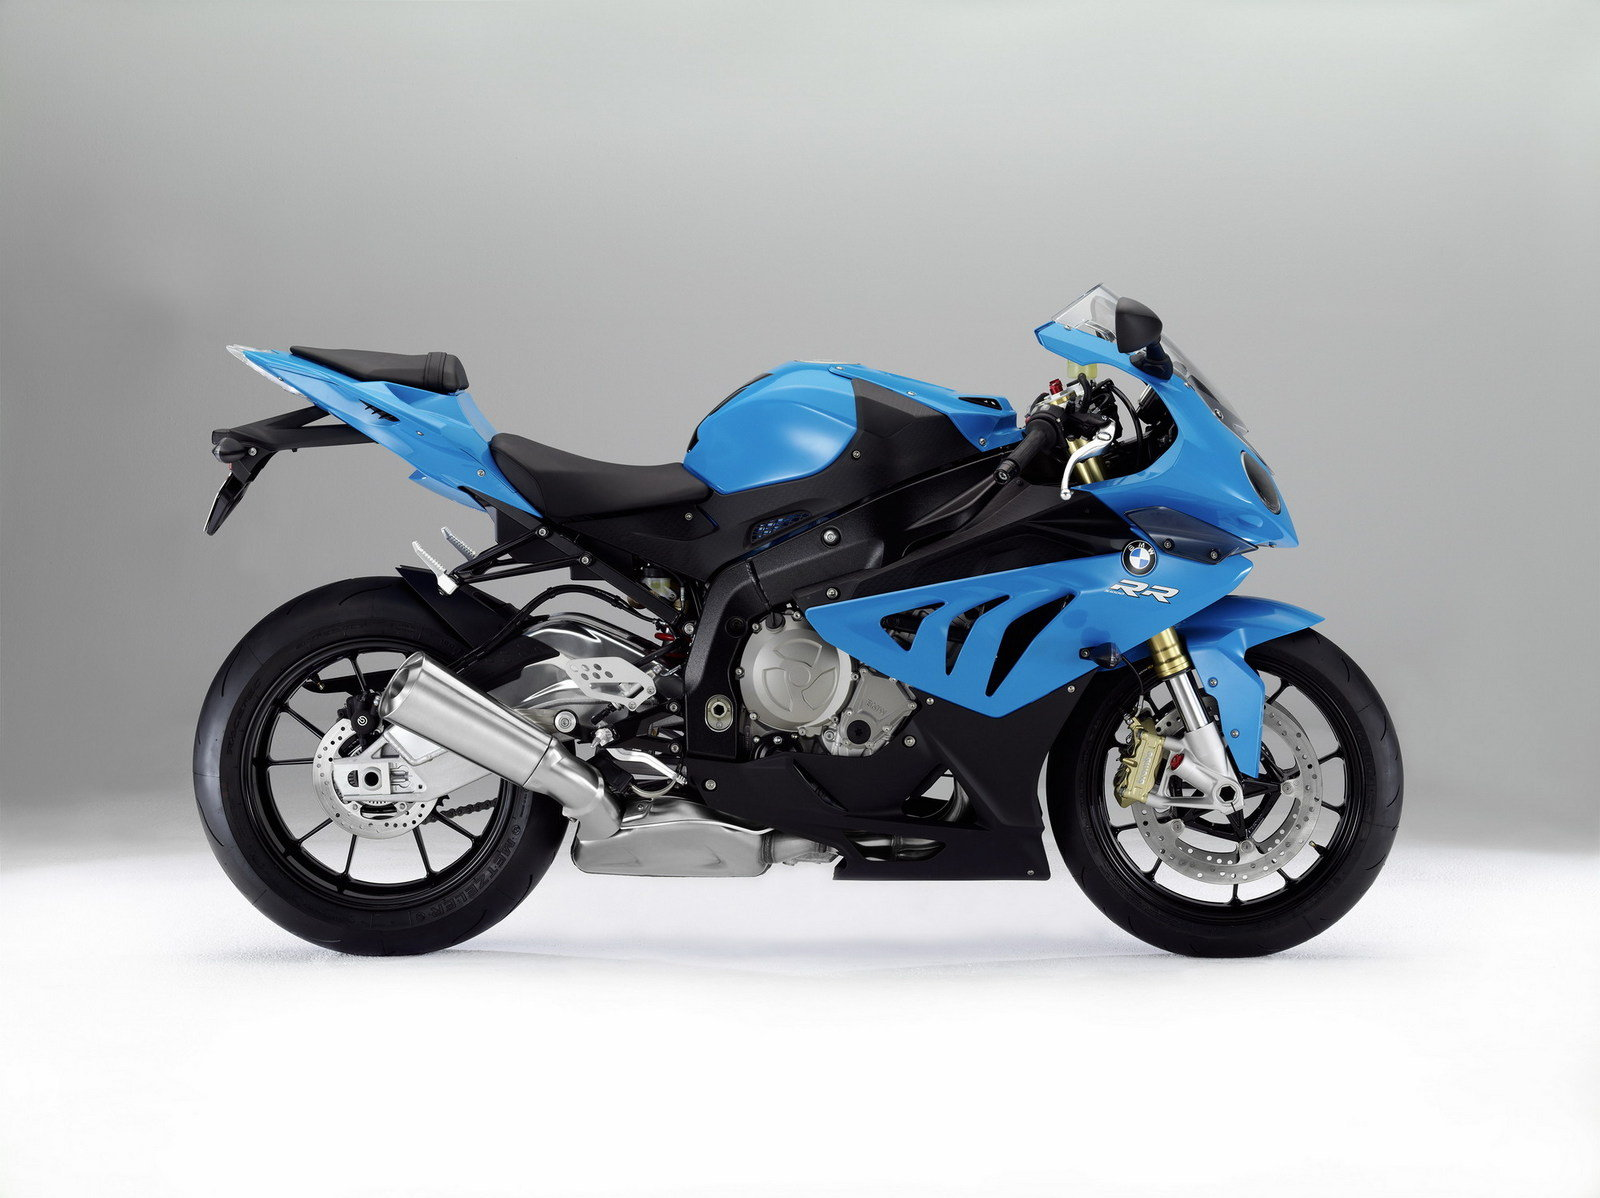 2012 bmw s 1000 rr picture 421413 motorcycle review top speed. Black Bedroom Furniture Sets. Home Design Ideas